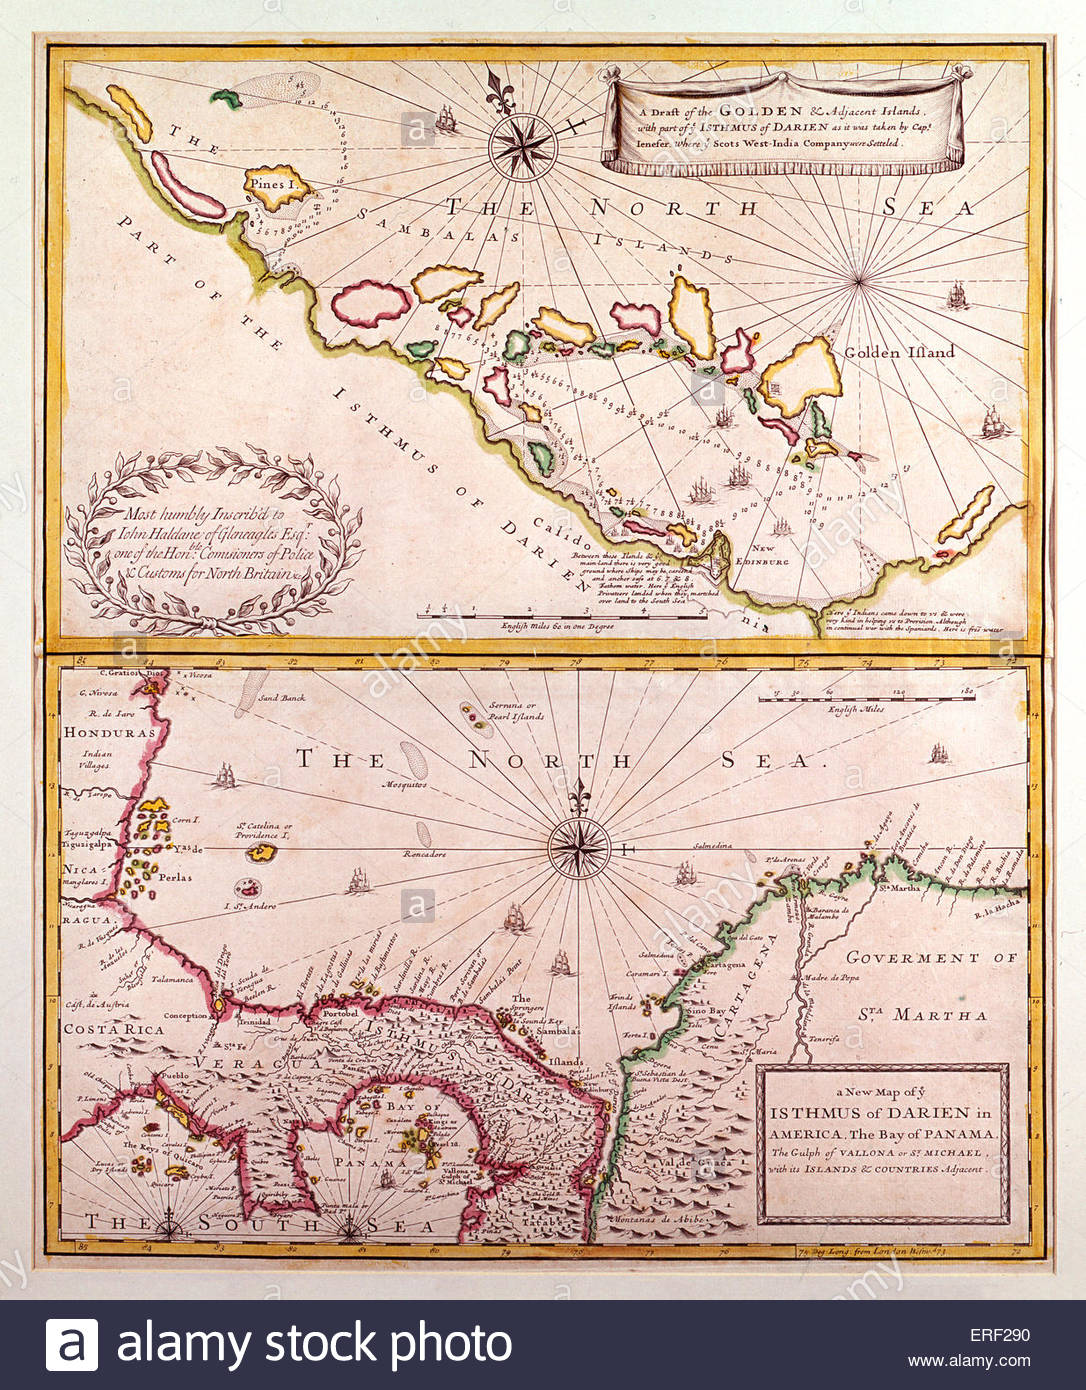 Isthmus of Darien - map by Blaeu (father & son), 17th century.   Also known as Isthmus of Panama, narrow strip - Stock Image